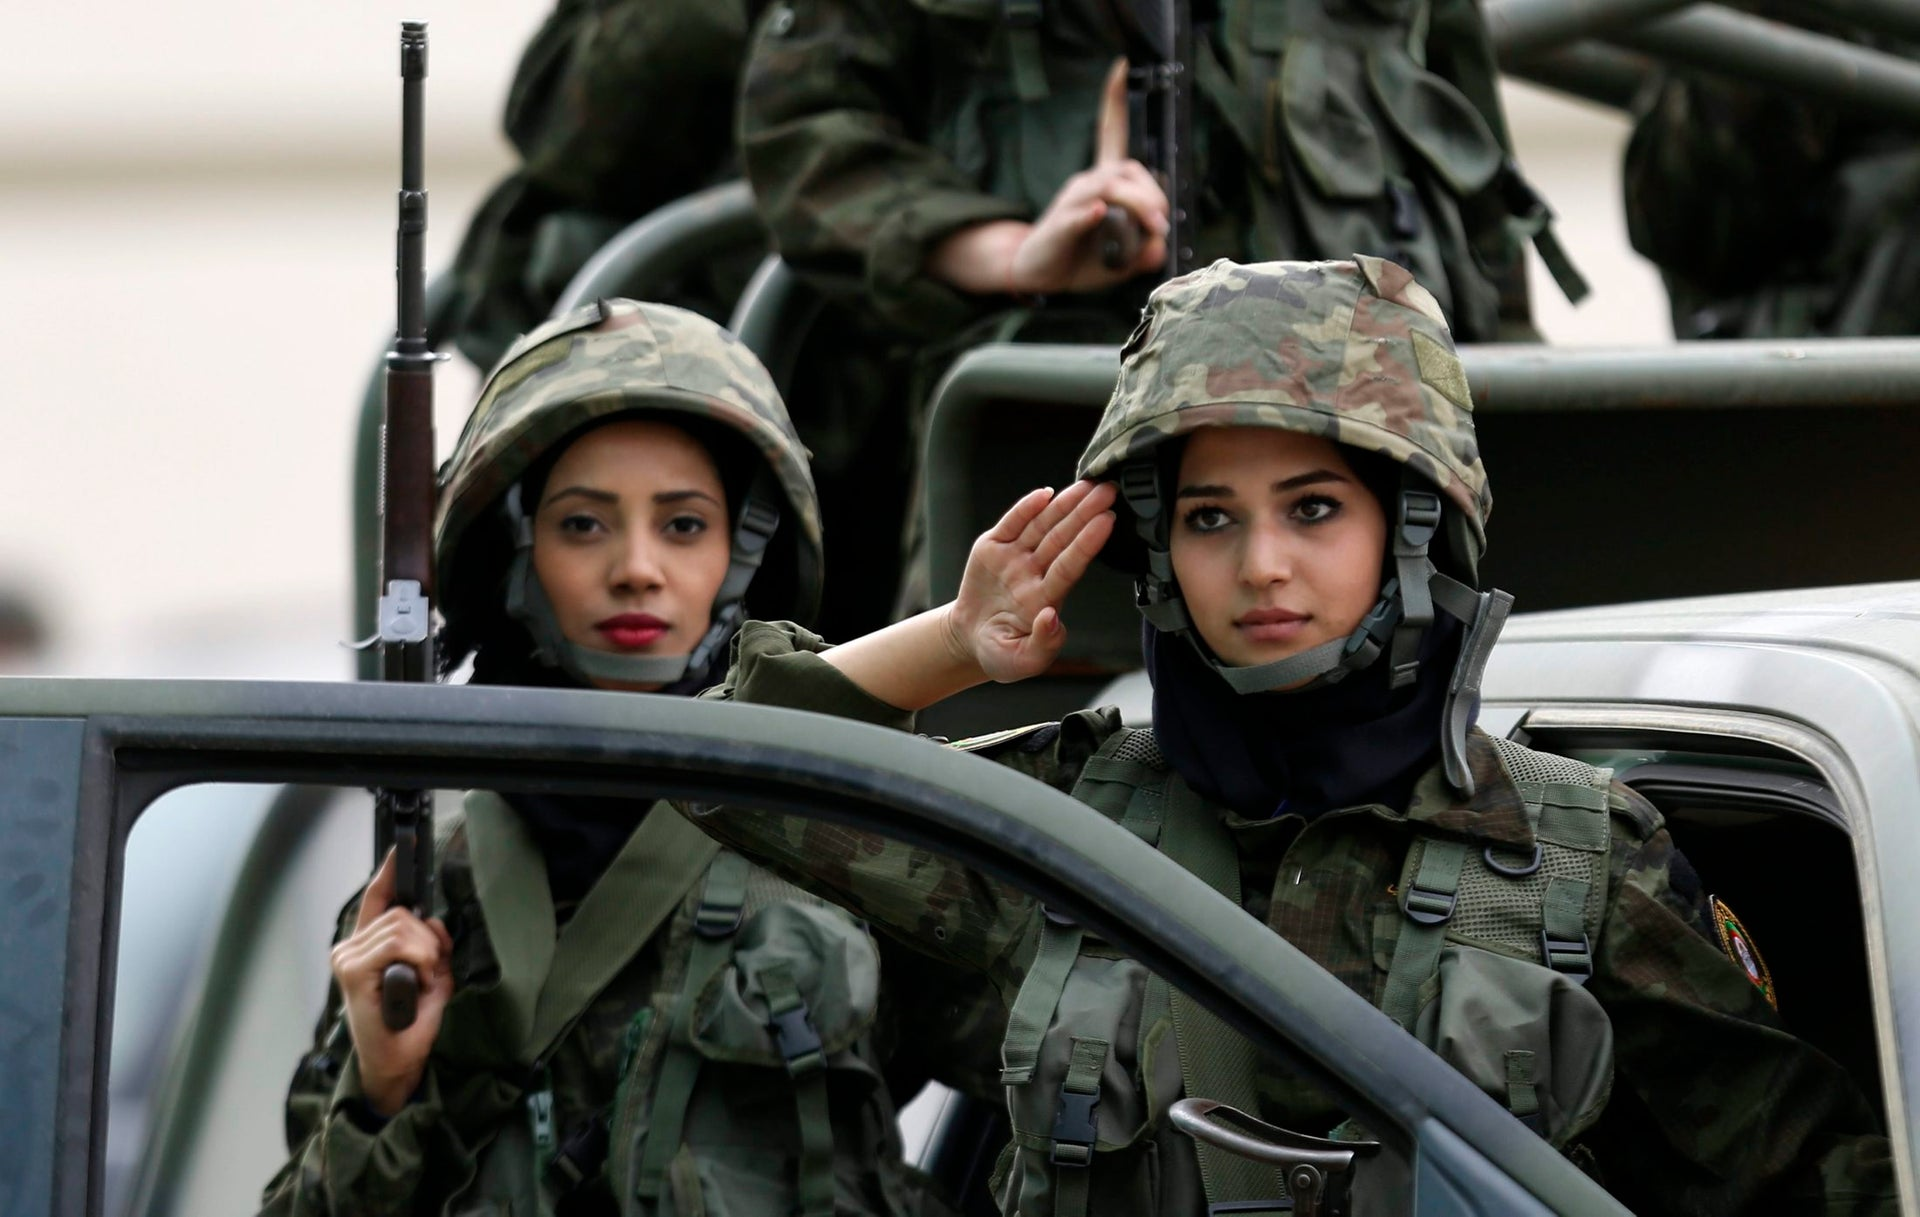 Female members of the Palestinian presidential guard take part in a training session at a youth camp with Palestinian security forces, in the West Bank city of Jericho, Wednesday, Jan. 25, 2017. The participants wear military uniforms and spend 3 days in the military camp.